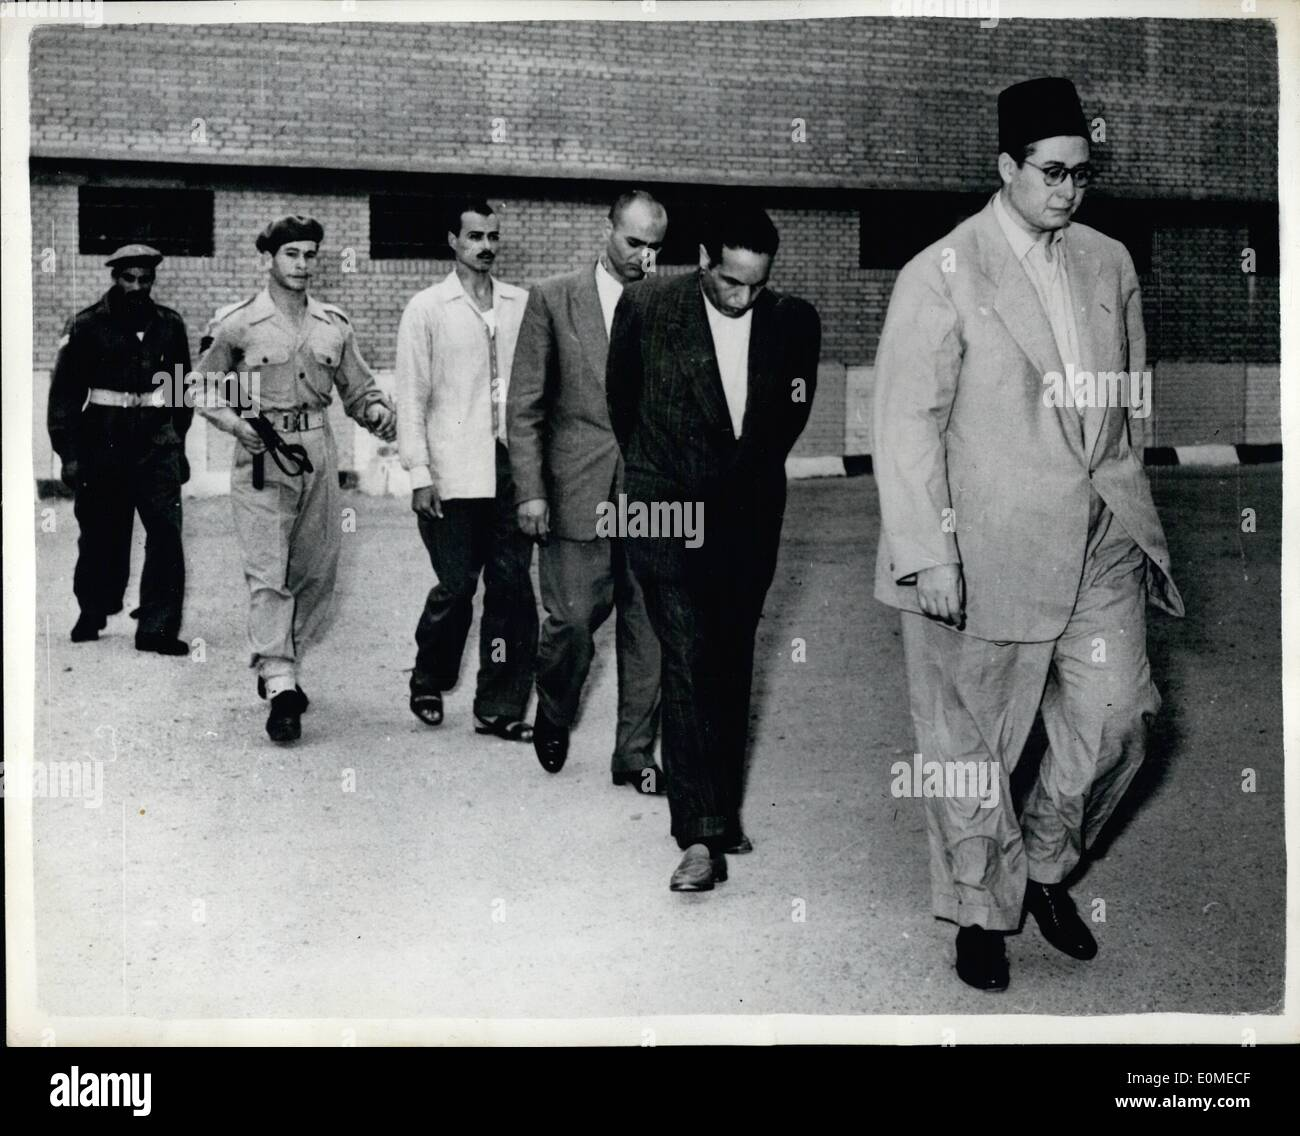 Nov. 11, 1954 - Round up of Members of the Muslim Brotherhood: Some members of the secret branch of the Moslem Brotherhood, seen on their way to a military prison in Cairo, after their arrest recently. It was this branch which, it is alleged,, had preprared plans for the assasination of all members of the Revolution Council and to eliminate 160 officers. - Stock Image